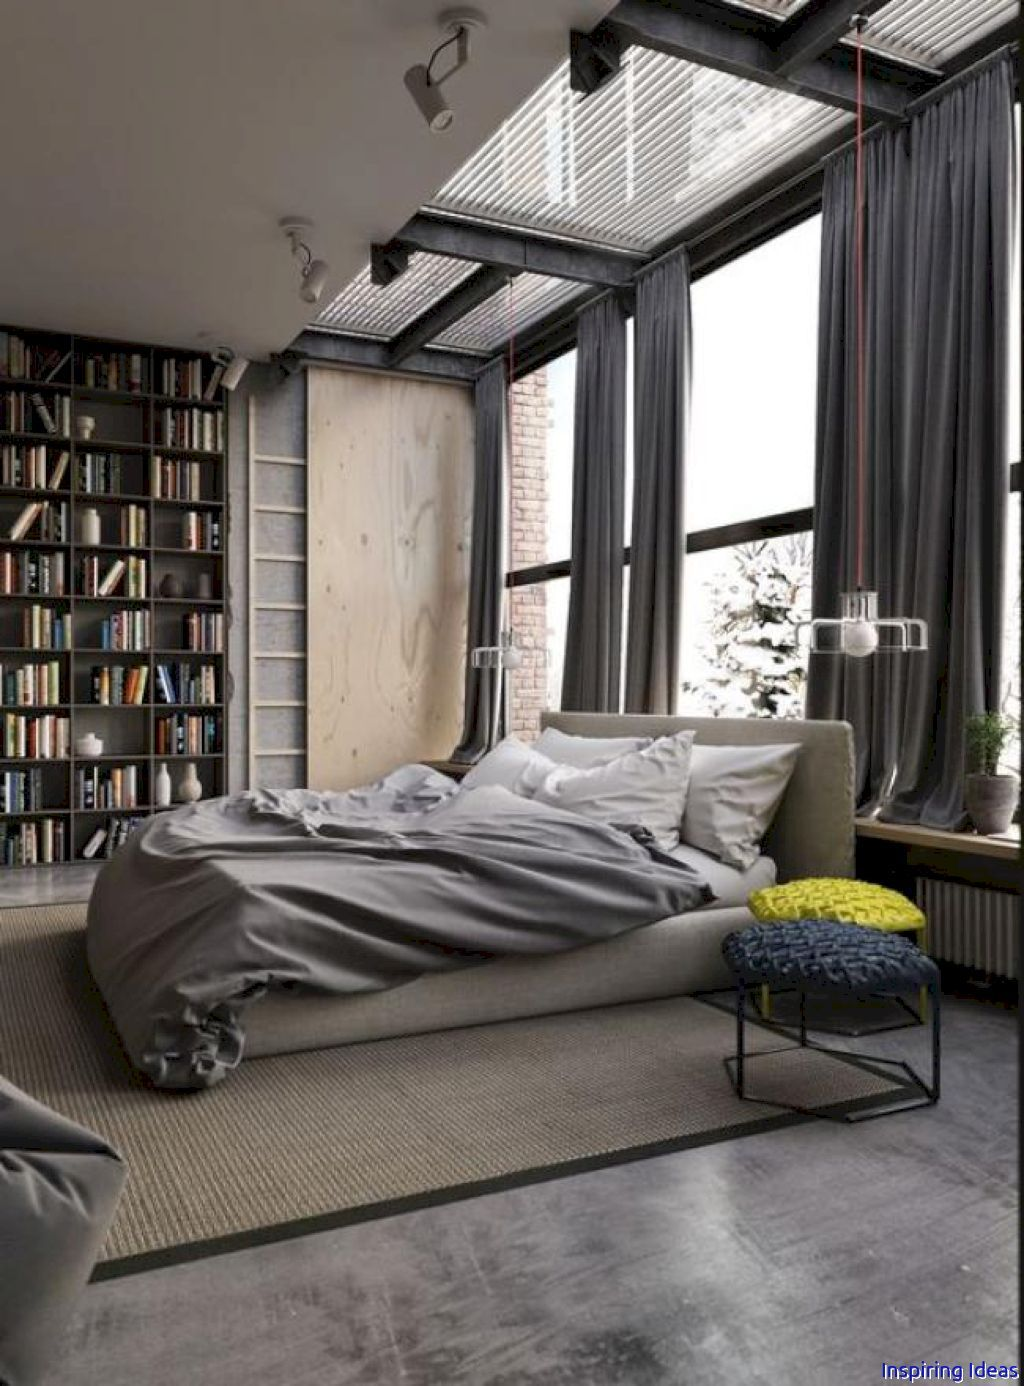 Gorgeous 47 Great Apartment Decorating Ideas for Men ://lovelyving.com/2017/11/02/47-great-apartment-decorating-ideas-men/ & 47 Great Apartment Decorating Ideas for Men | my bedroom | Pinterest ...